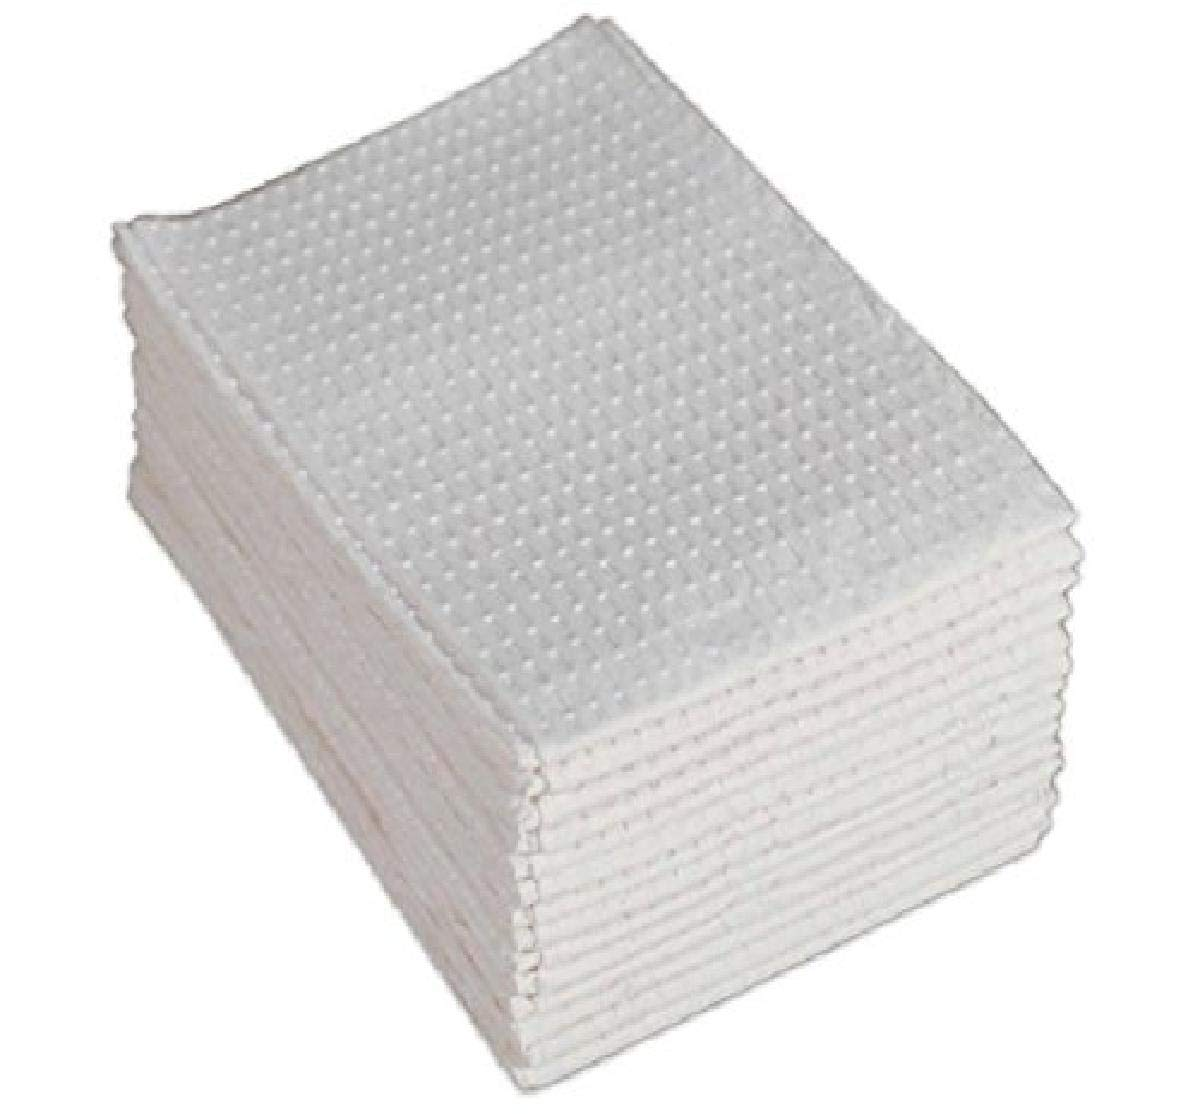 Avalon Papers 1001 Professional Towel, 3-Ply Tissue, 13'' x 18